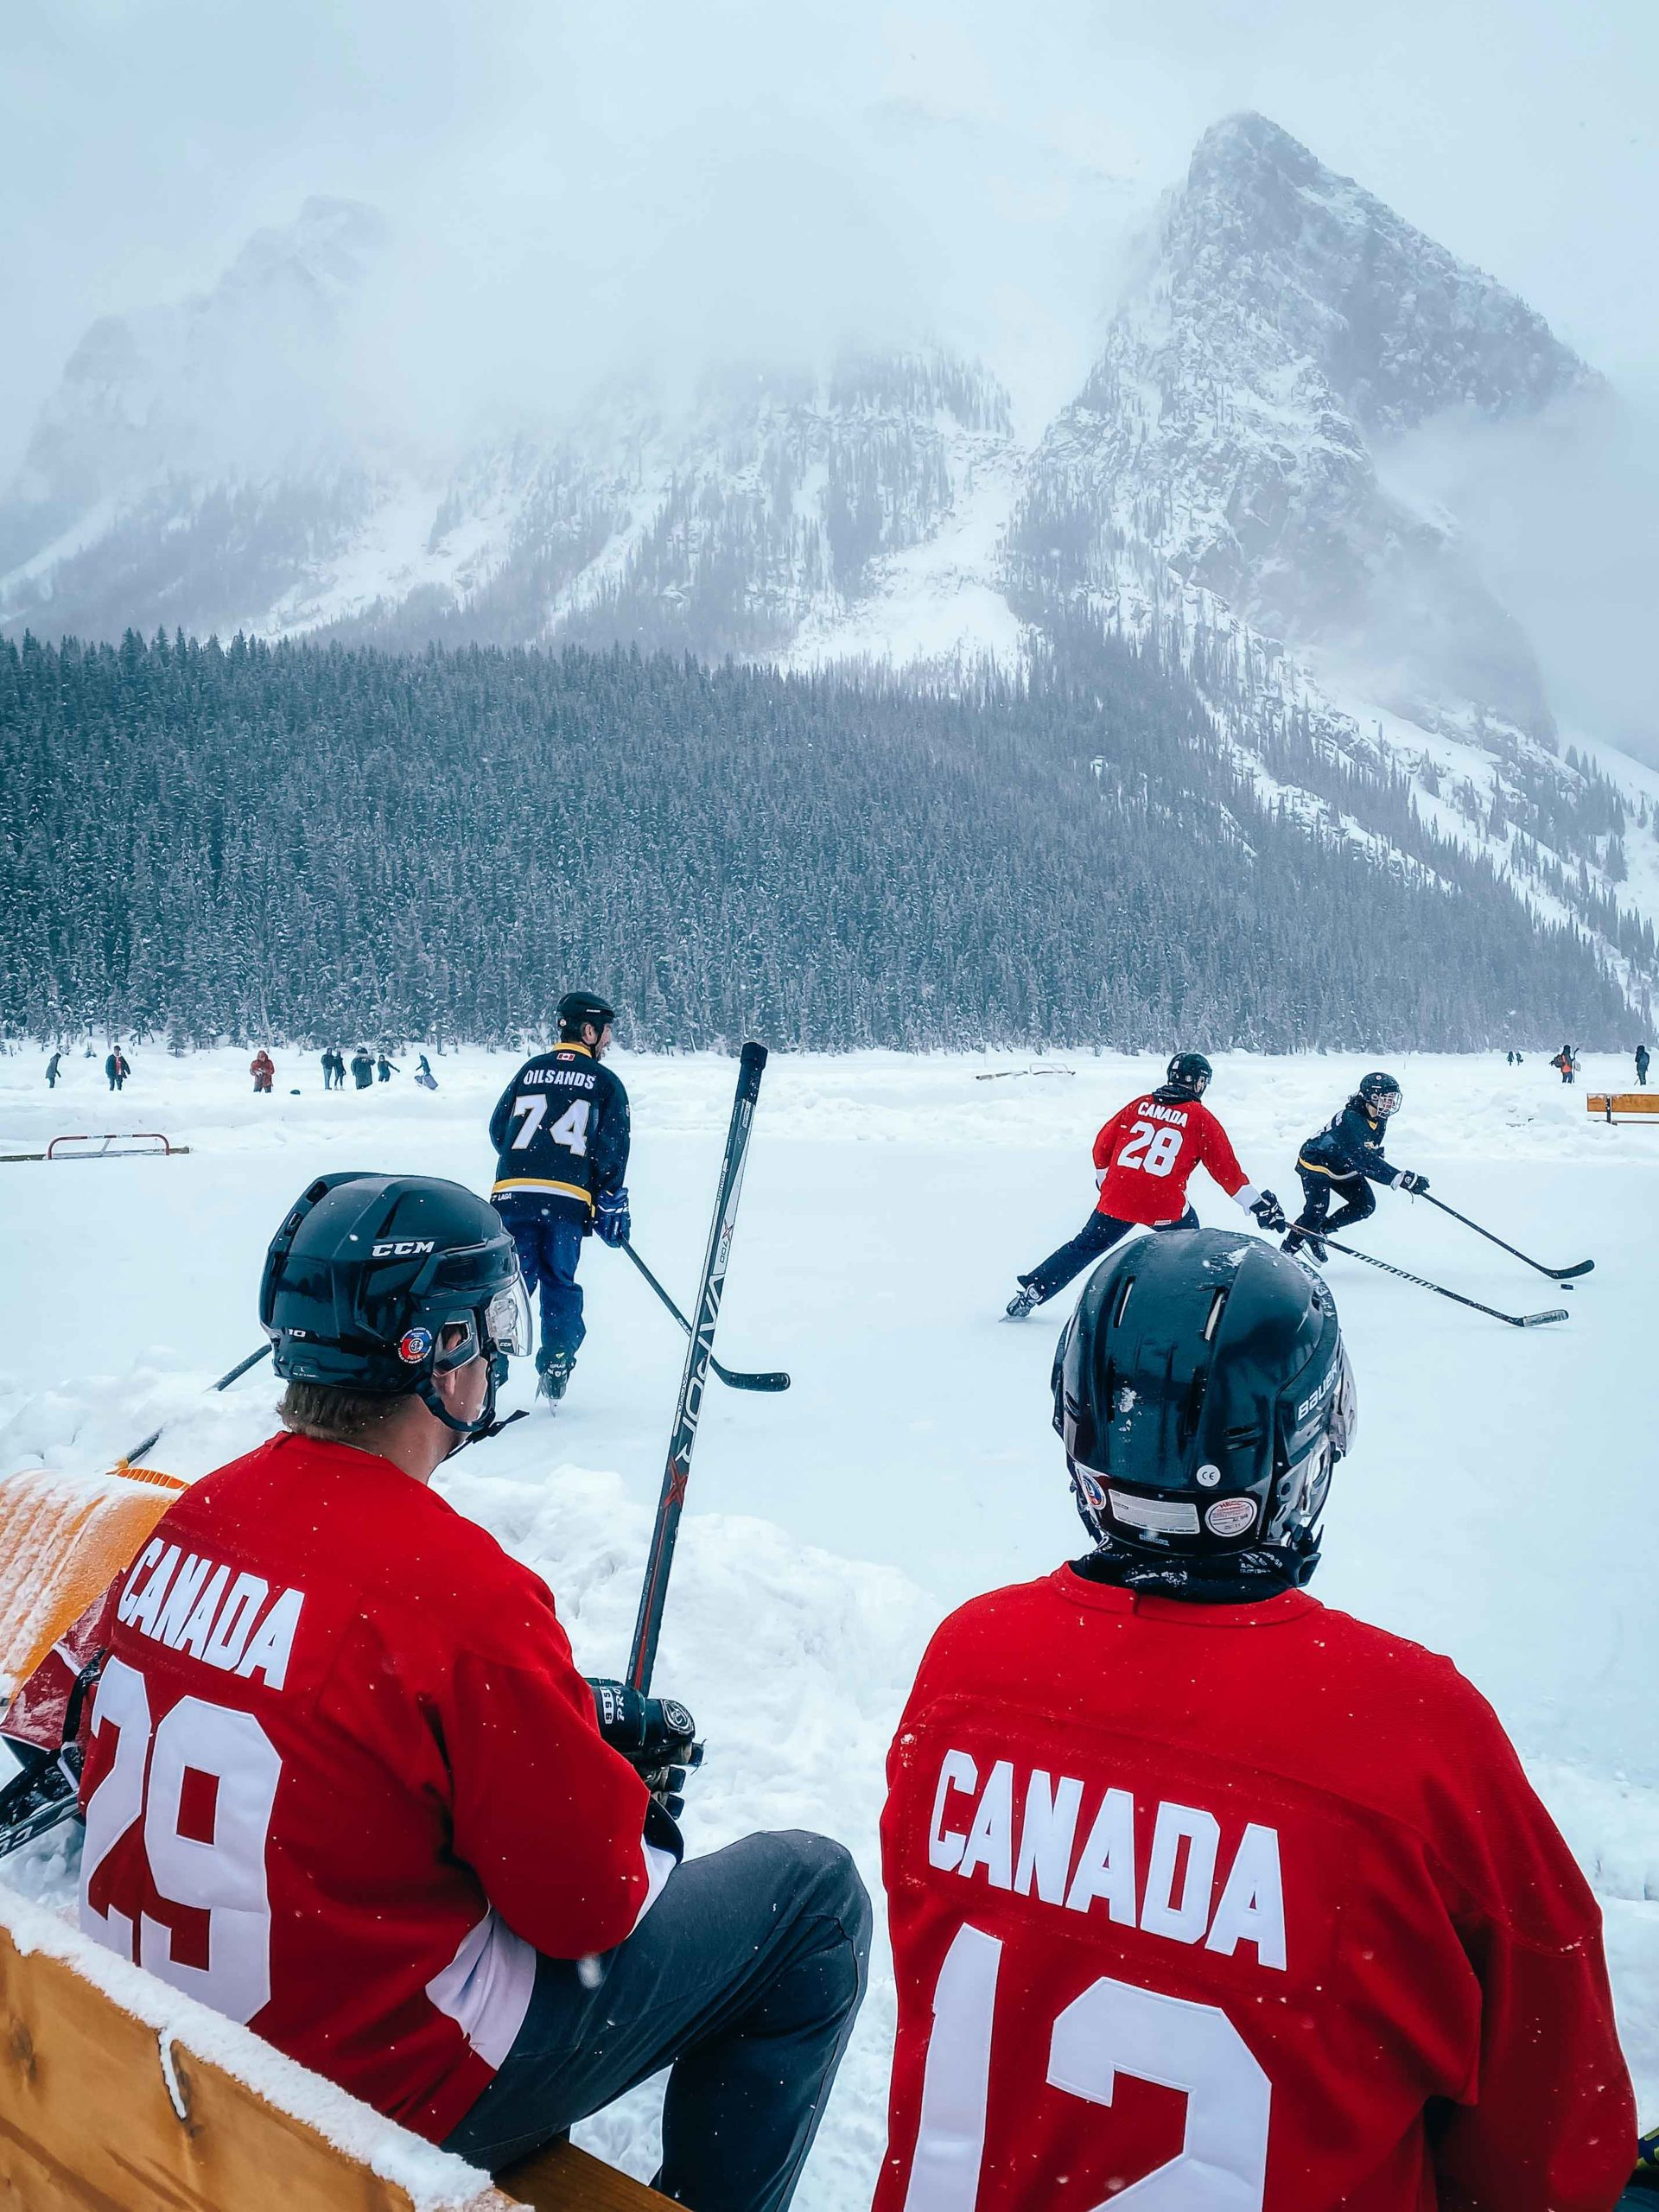 Using a foreground, like the hockey players in this photo, is one of the great photography tips for your phone by Sanjay Chauhan